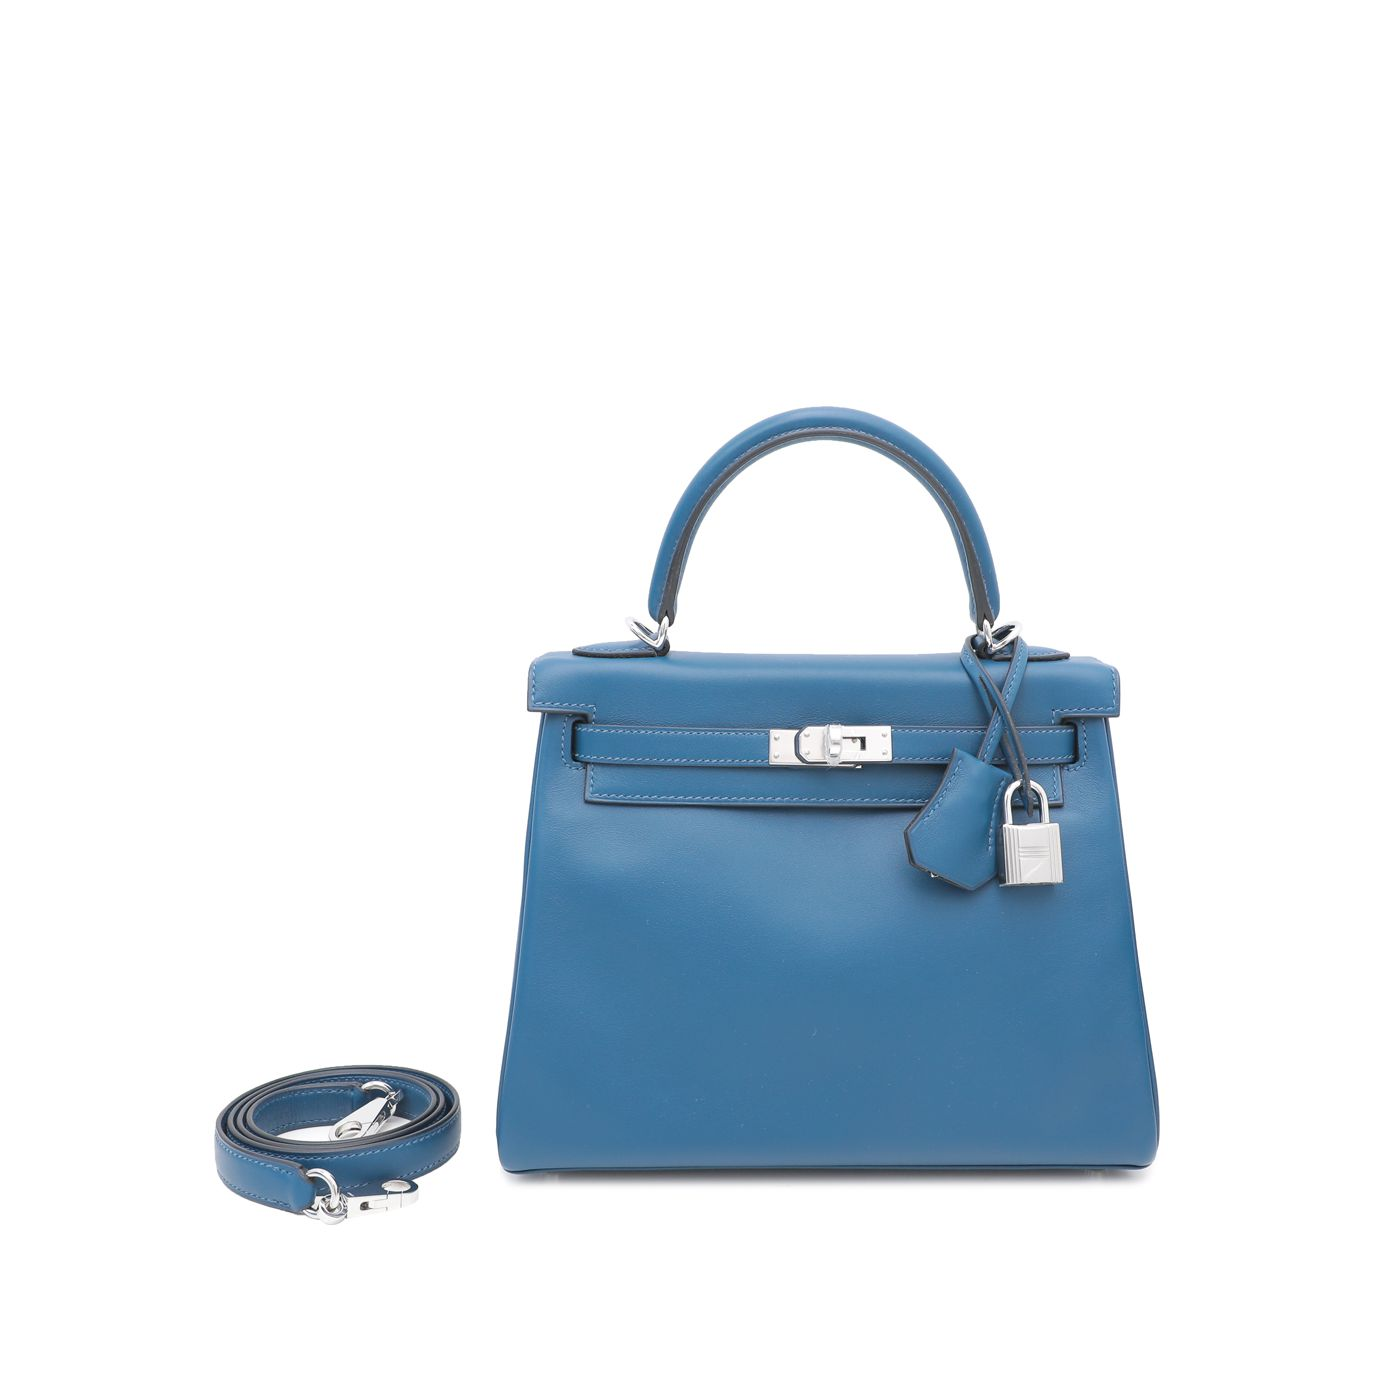 Hermes Deep Blue Retourne Kelly 25 Bag